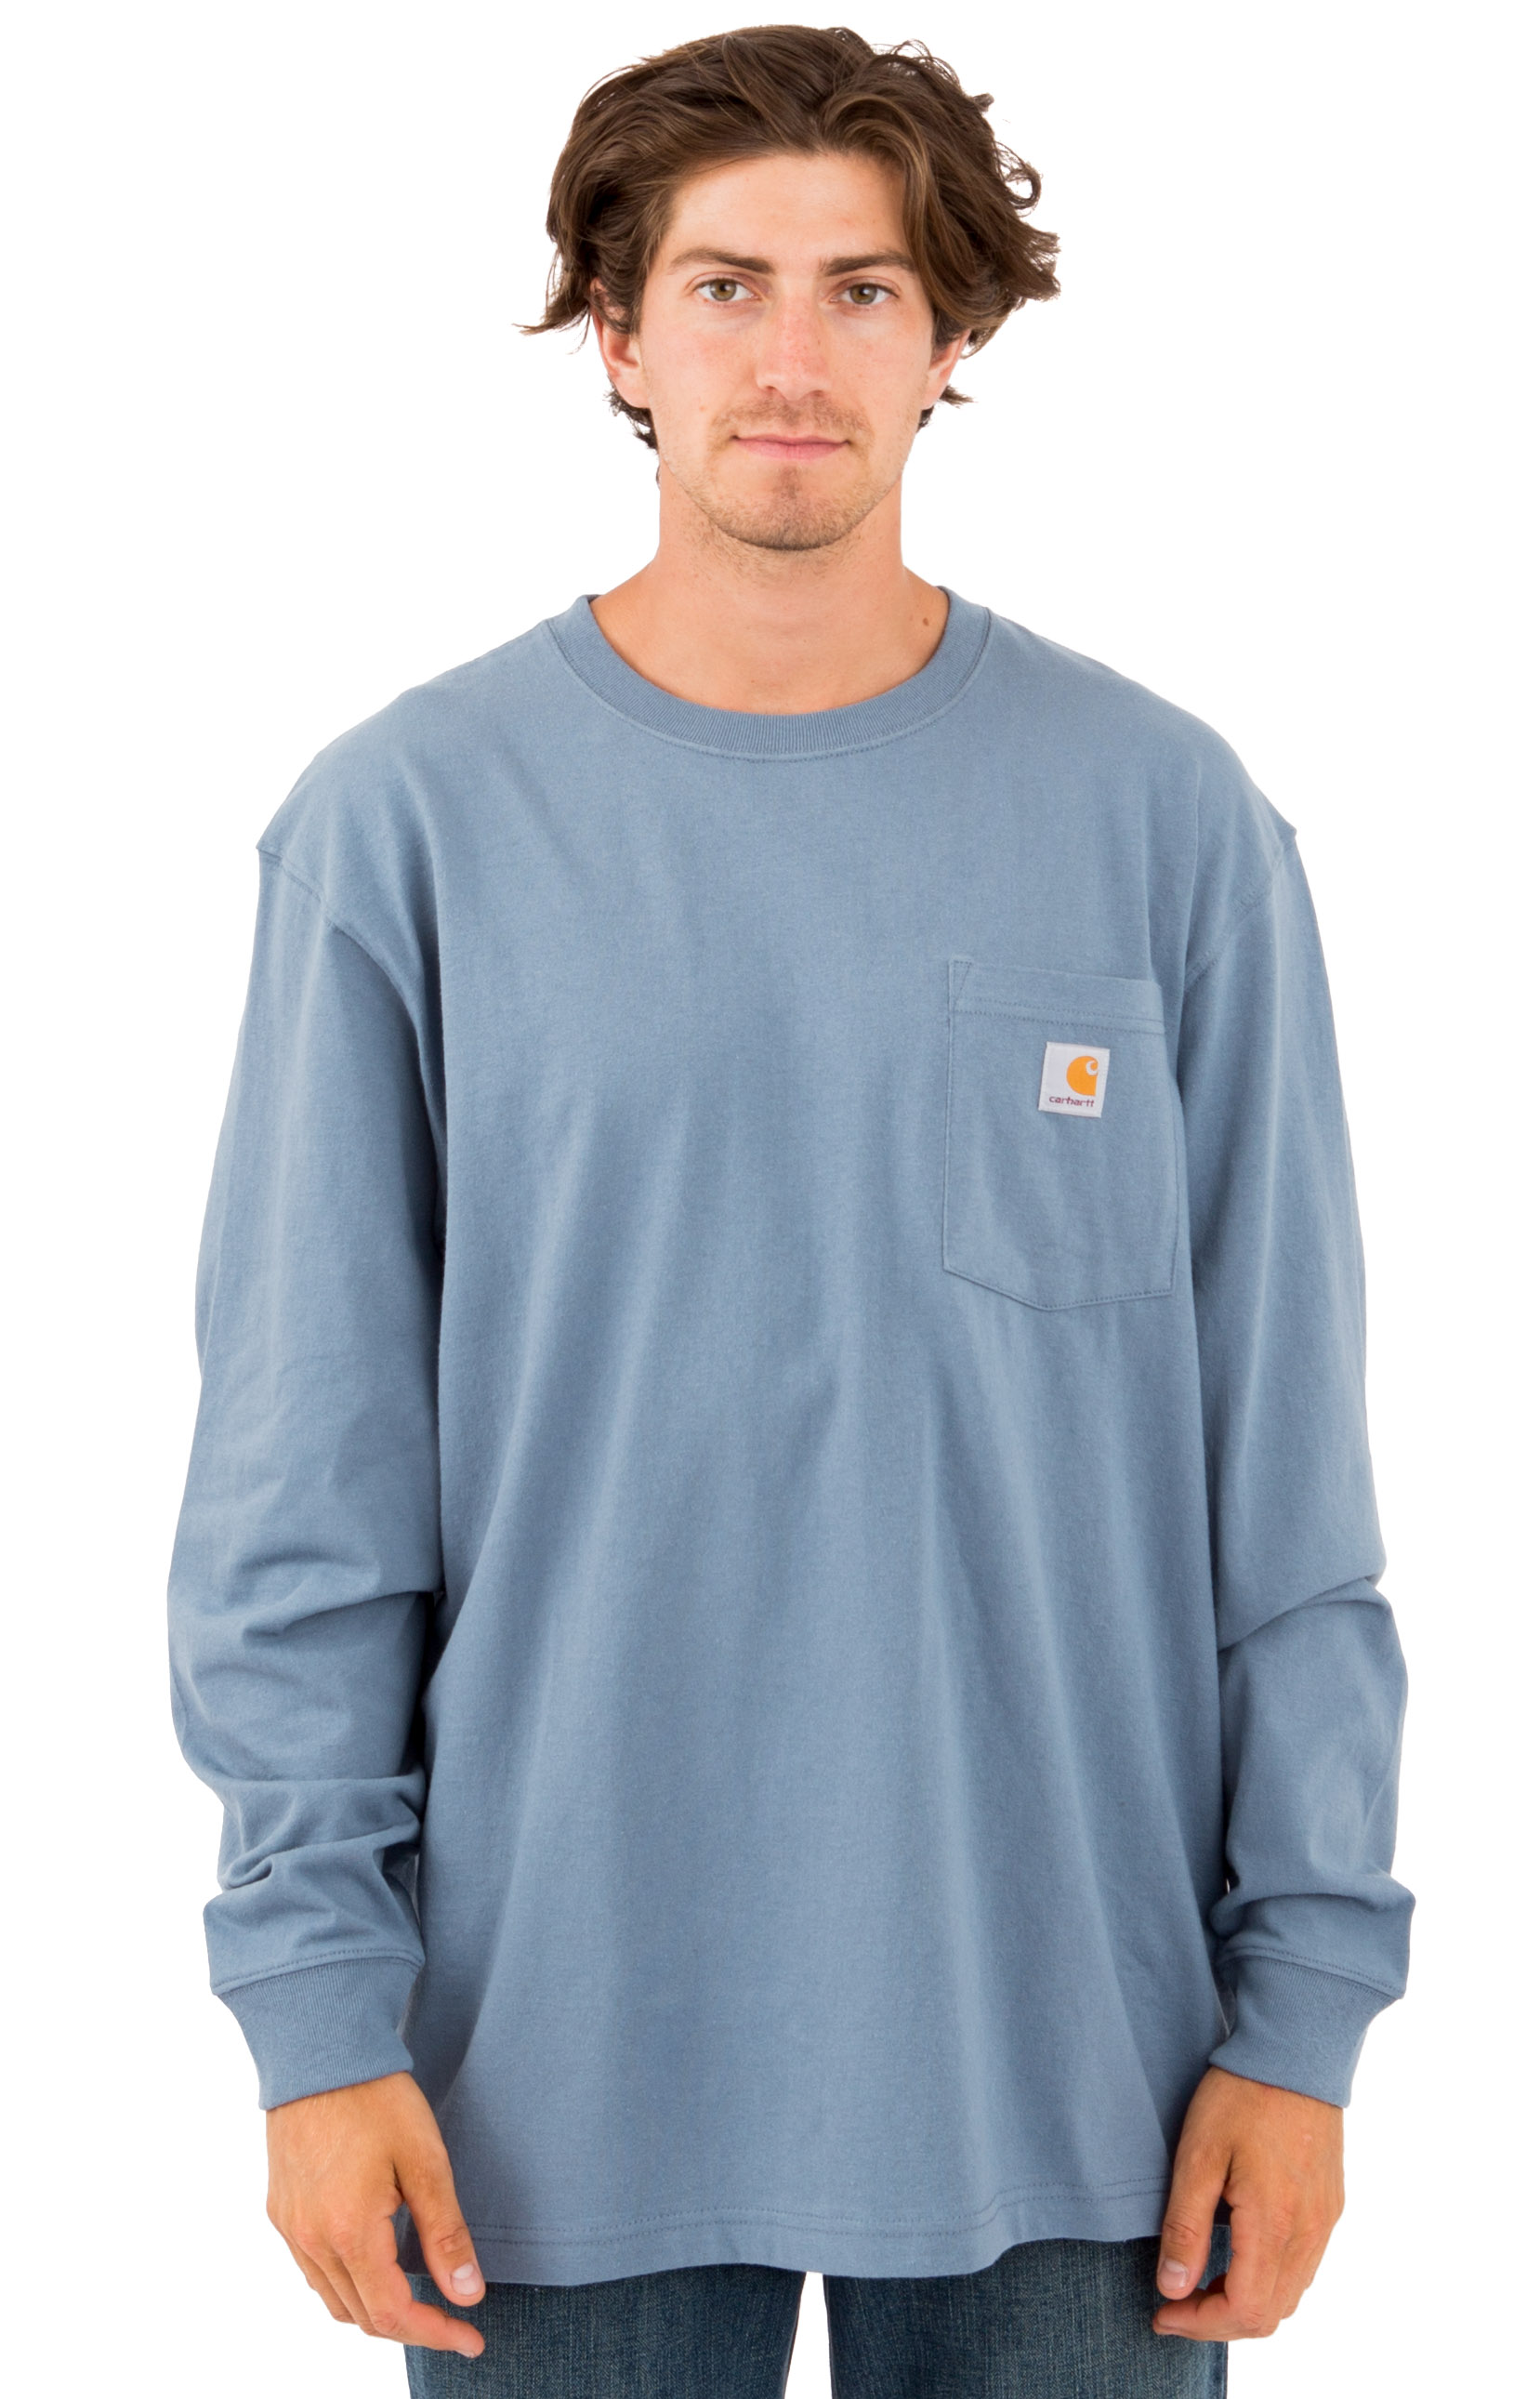 (K126) L/S Workwear Pocket Shirt - Steel Blue